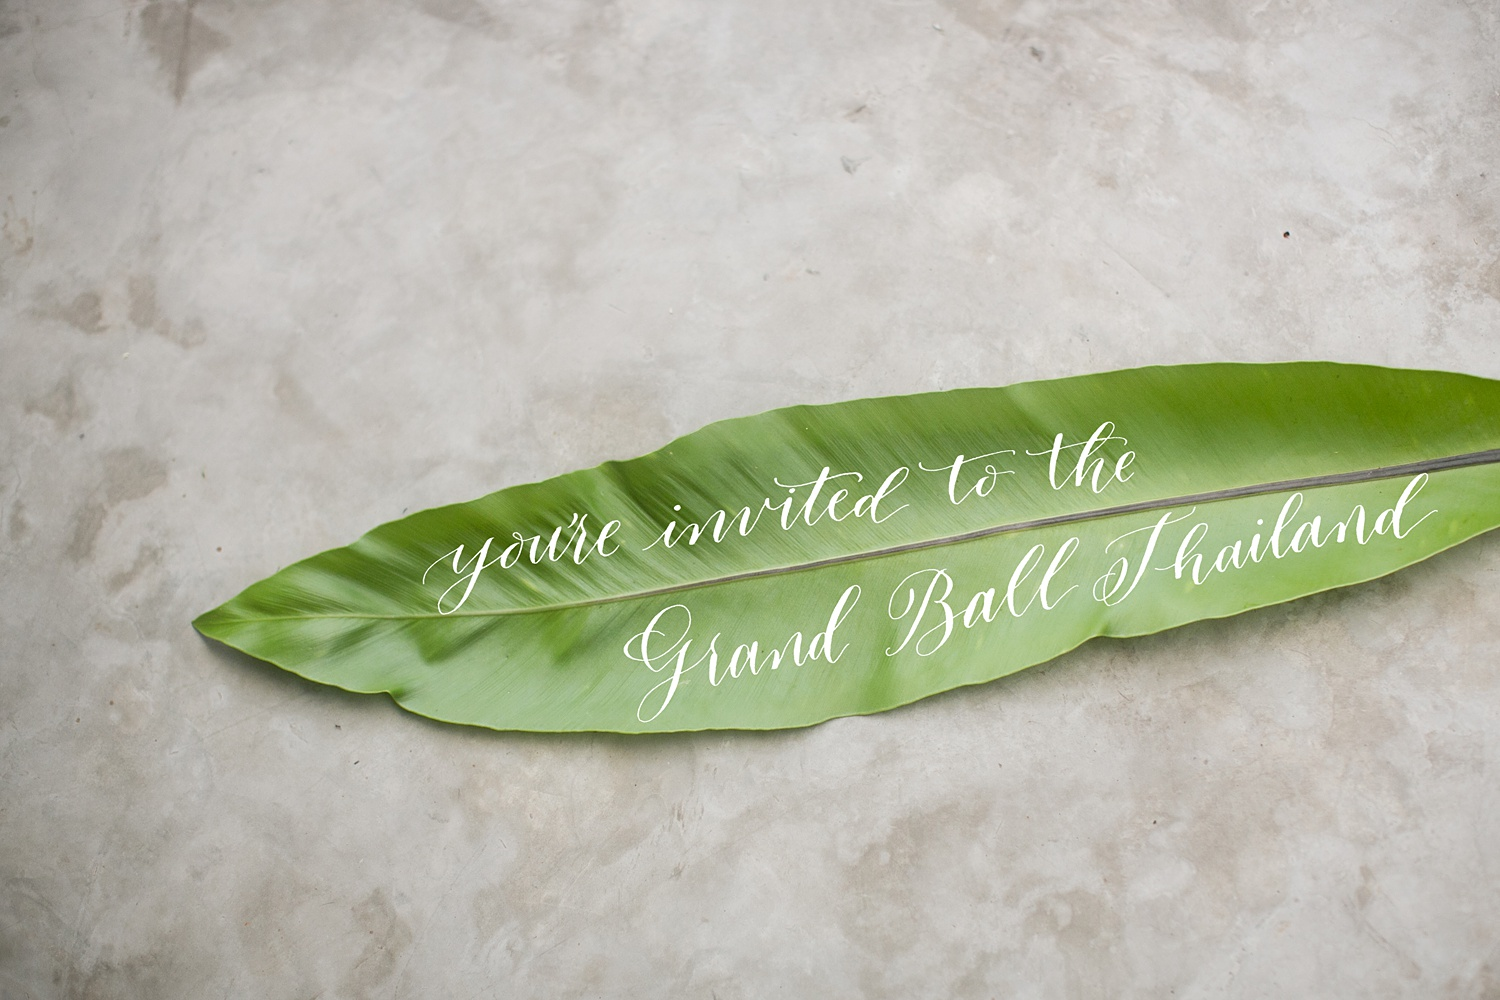 Newly Engaged Advice calligraphy invite